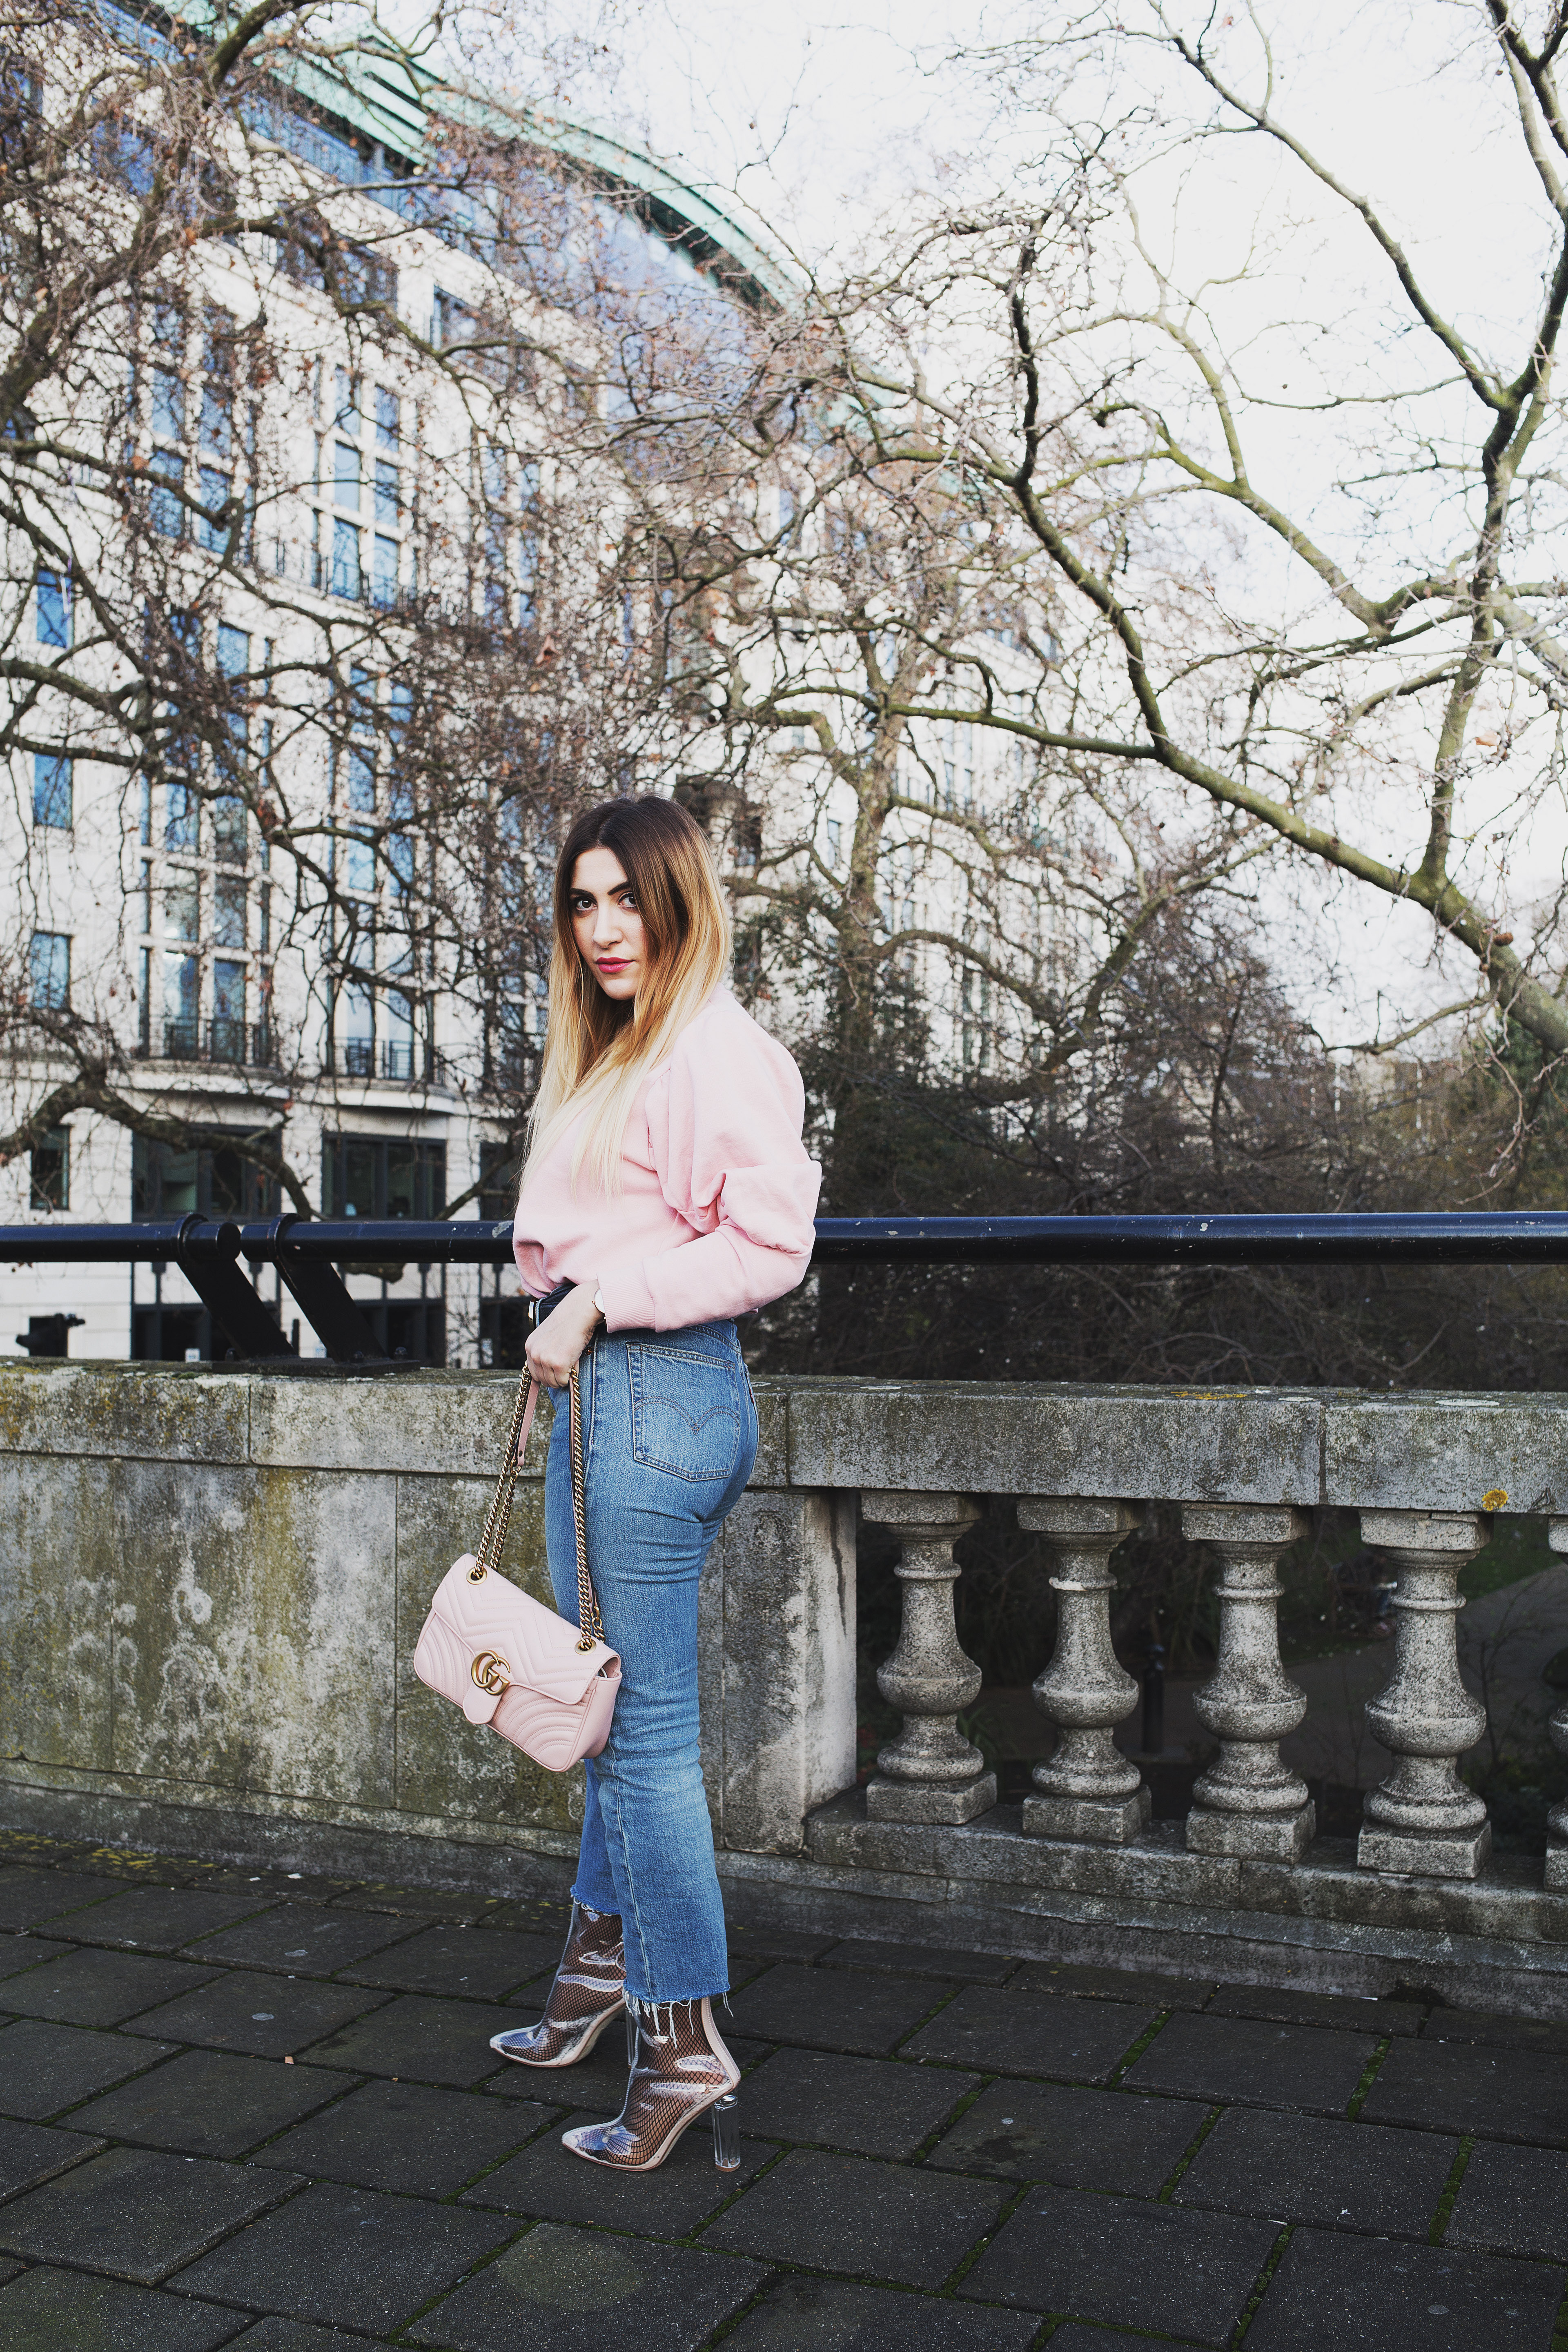 London Fashion Week Day 1 Style and Shows